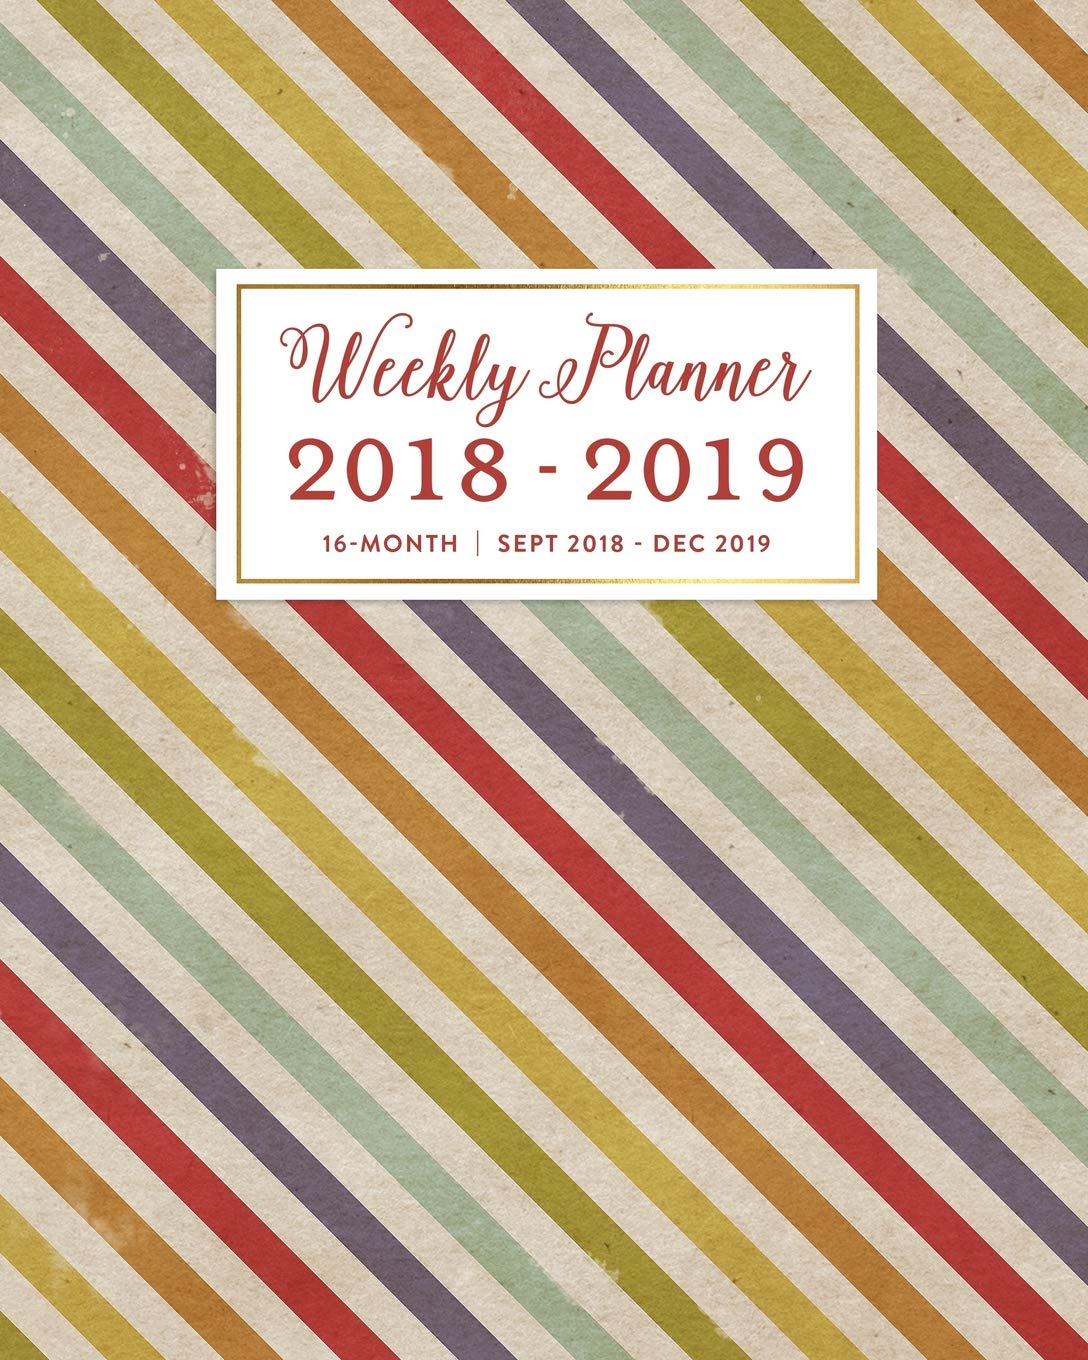 Weekly Planner 2018 - 2019, 16 Month Sept 2018 - Dec 2019 ...